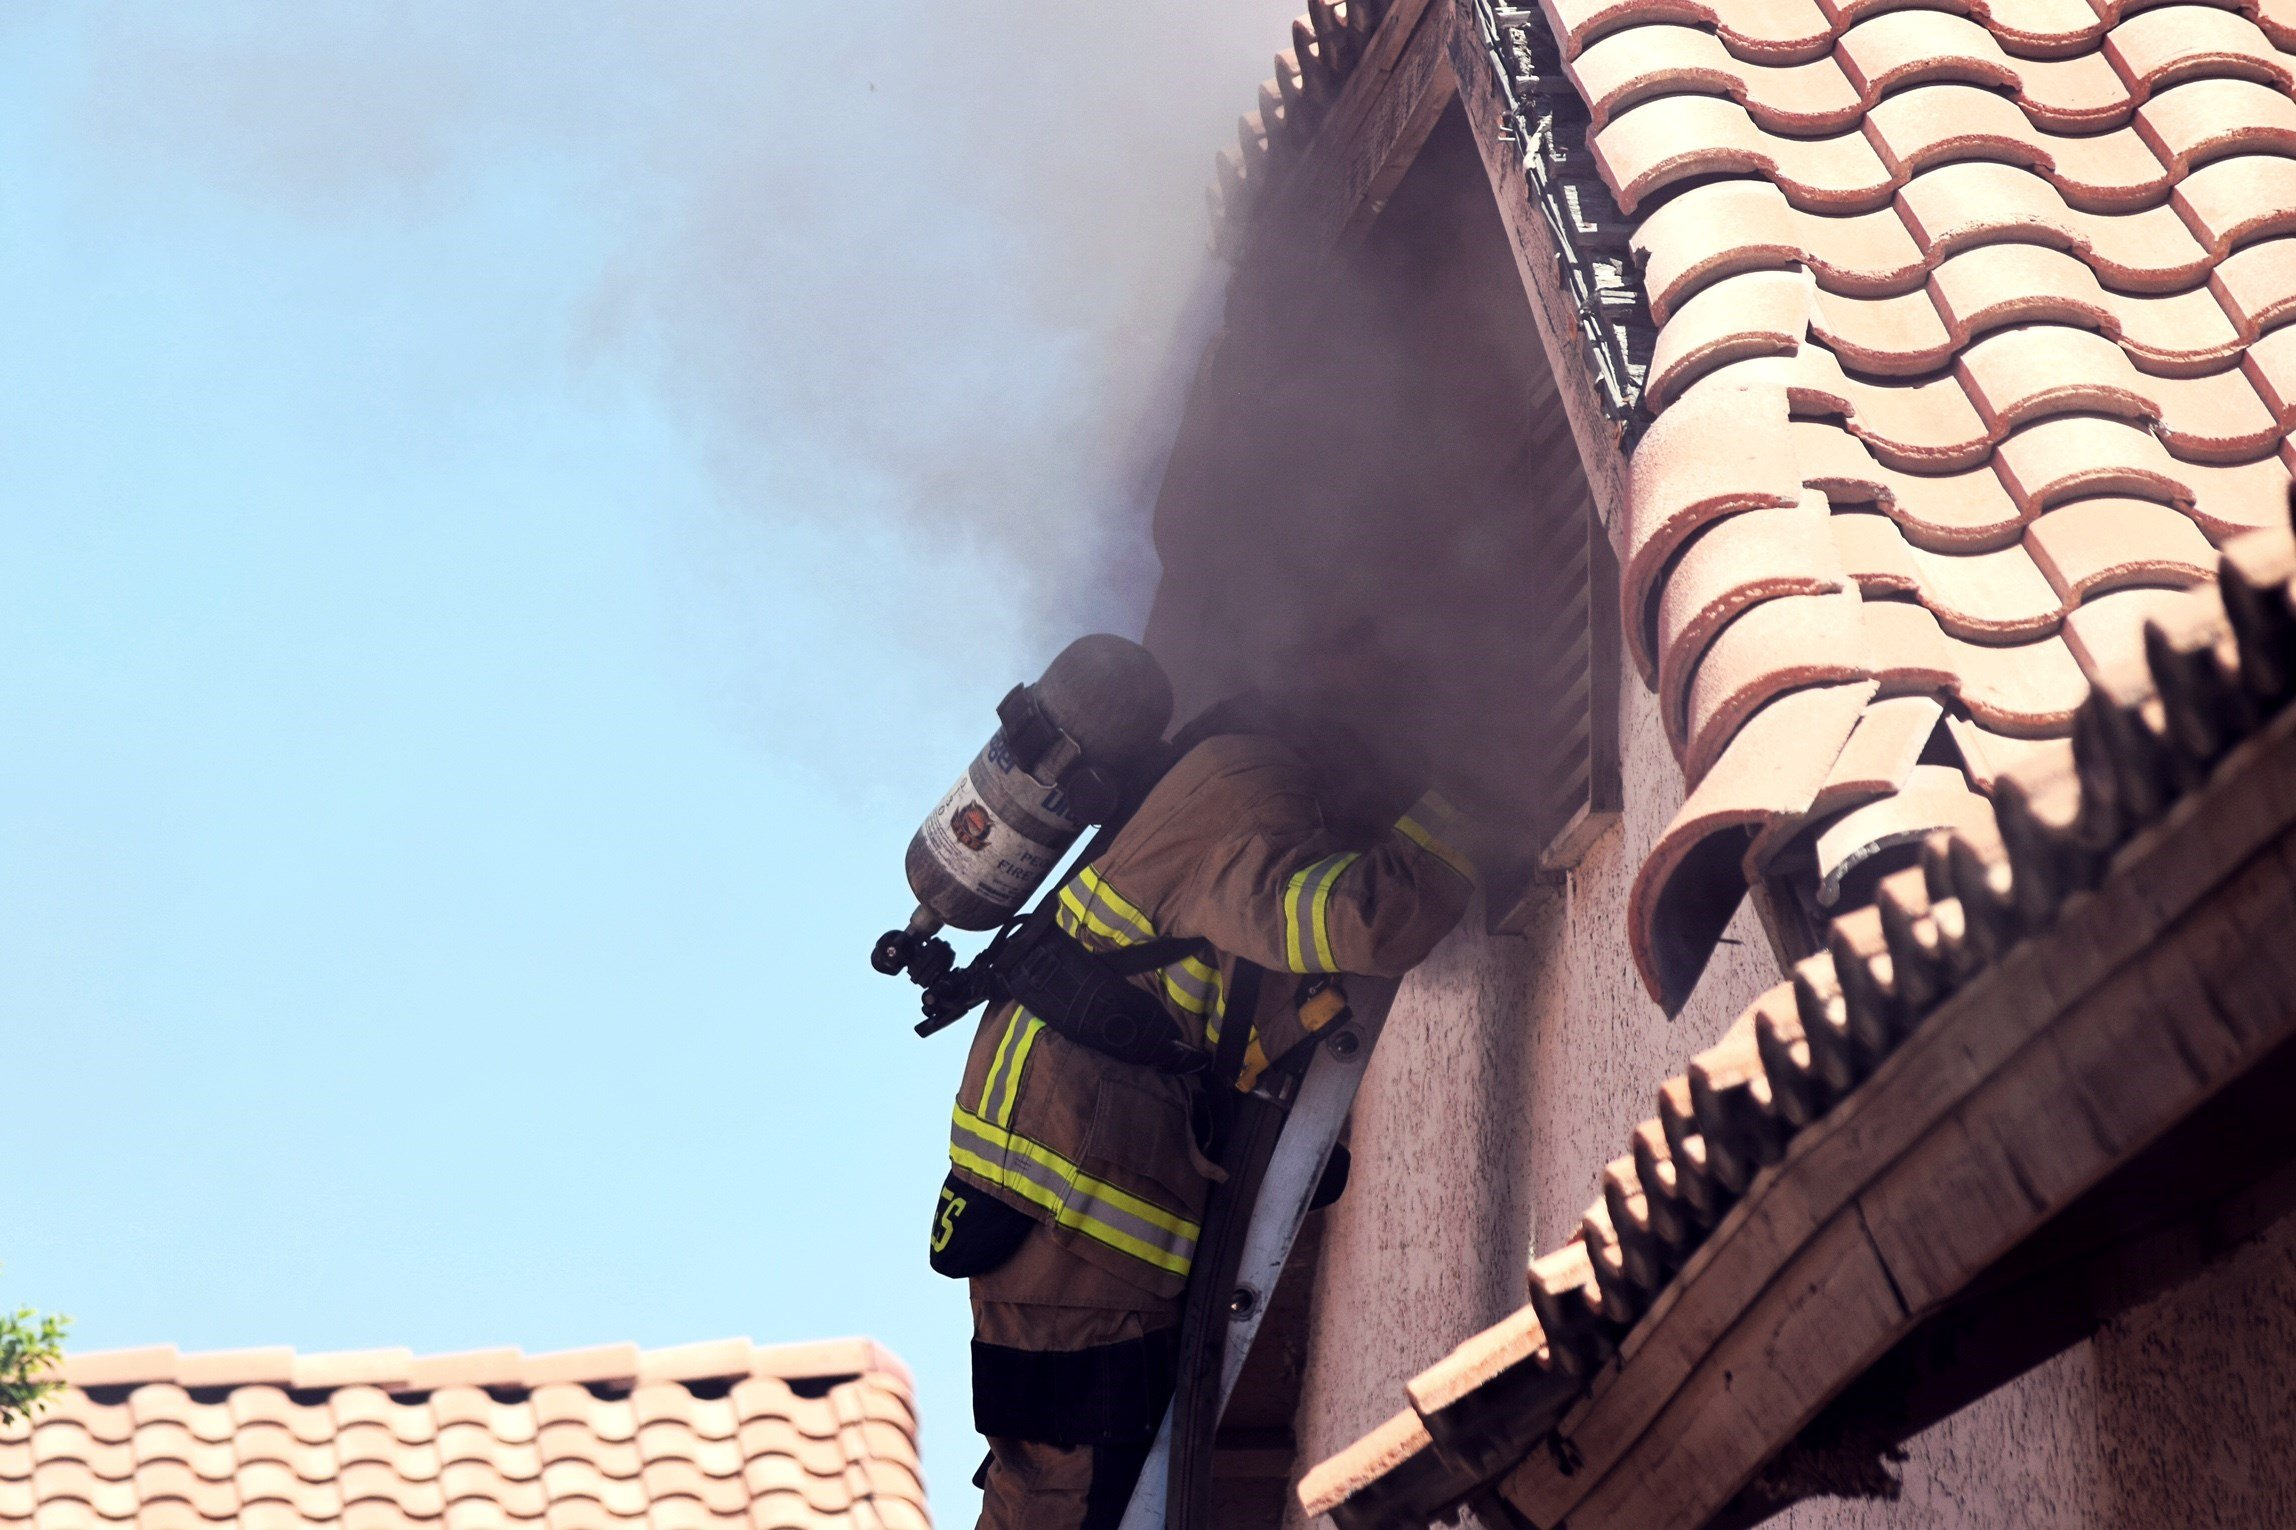 (Source: Peoria Fire Department)